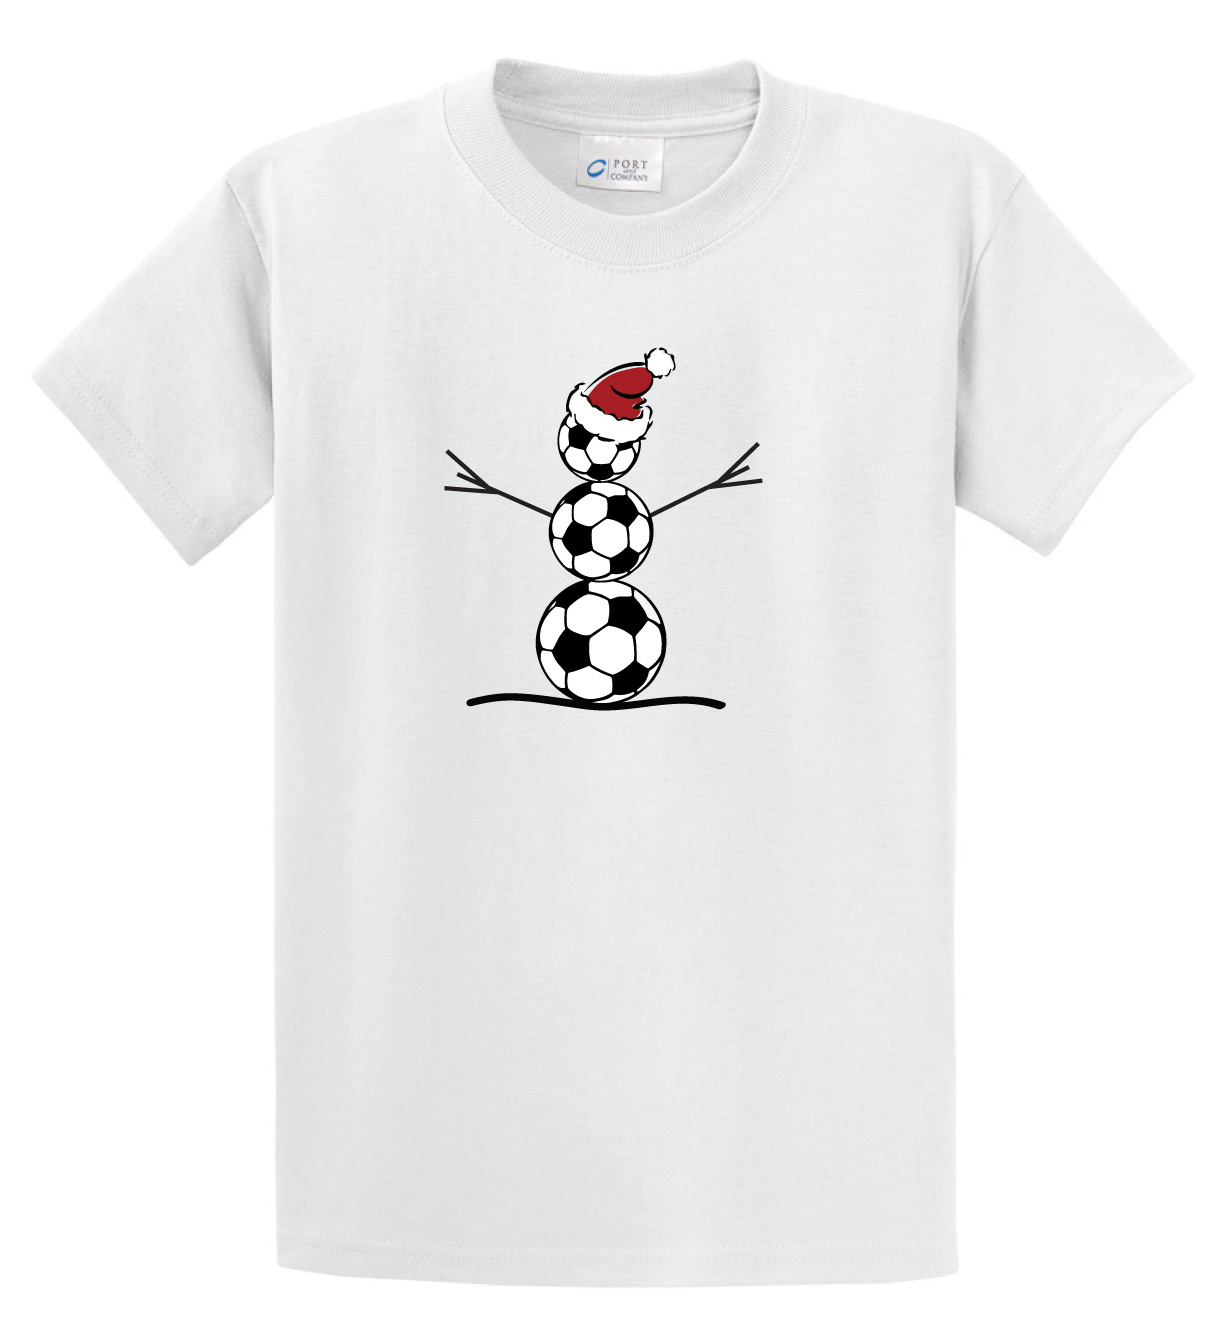 Code Four Athletics Soccer Snowman short sleeve t shirt in white